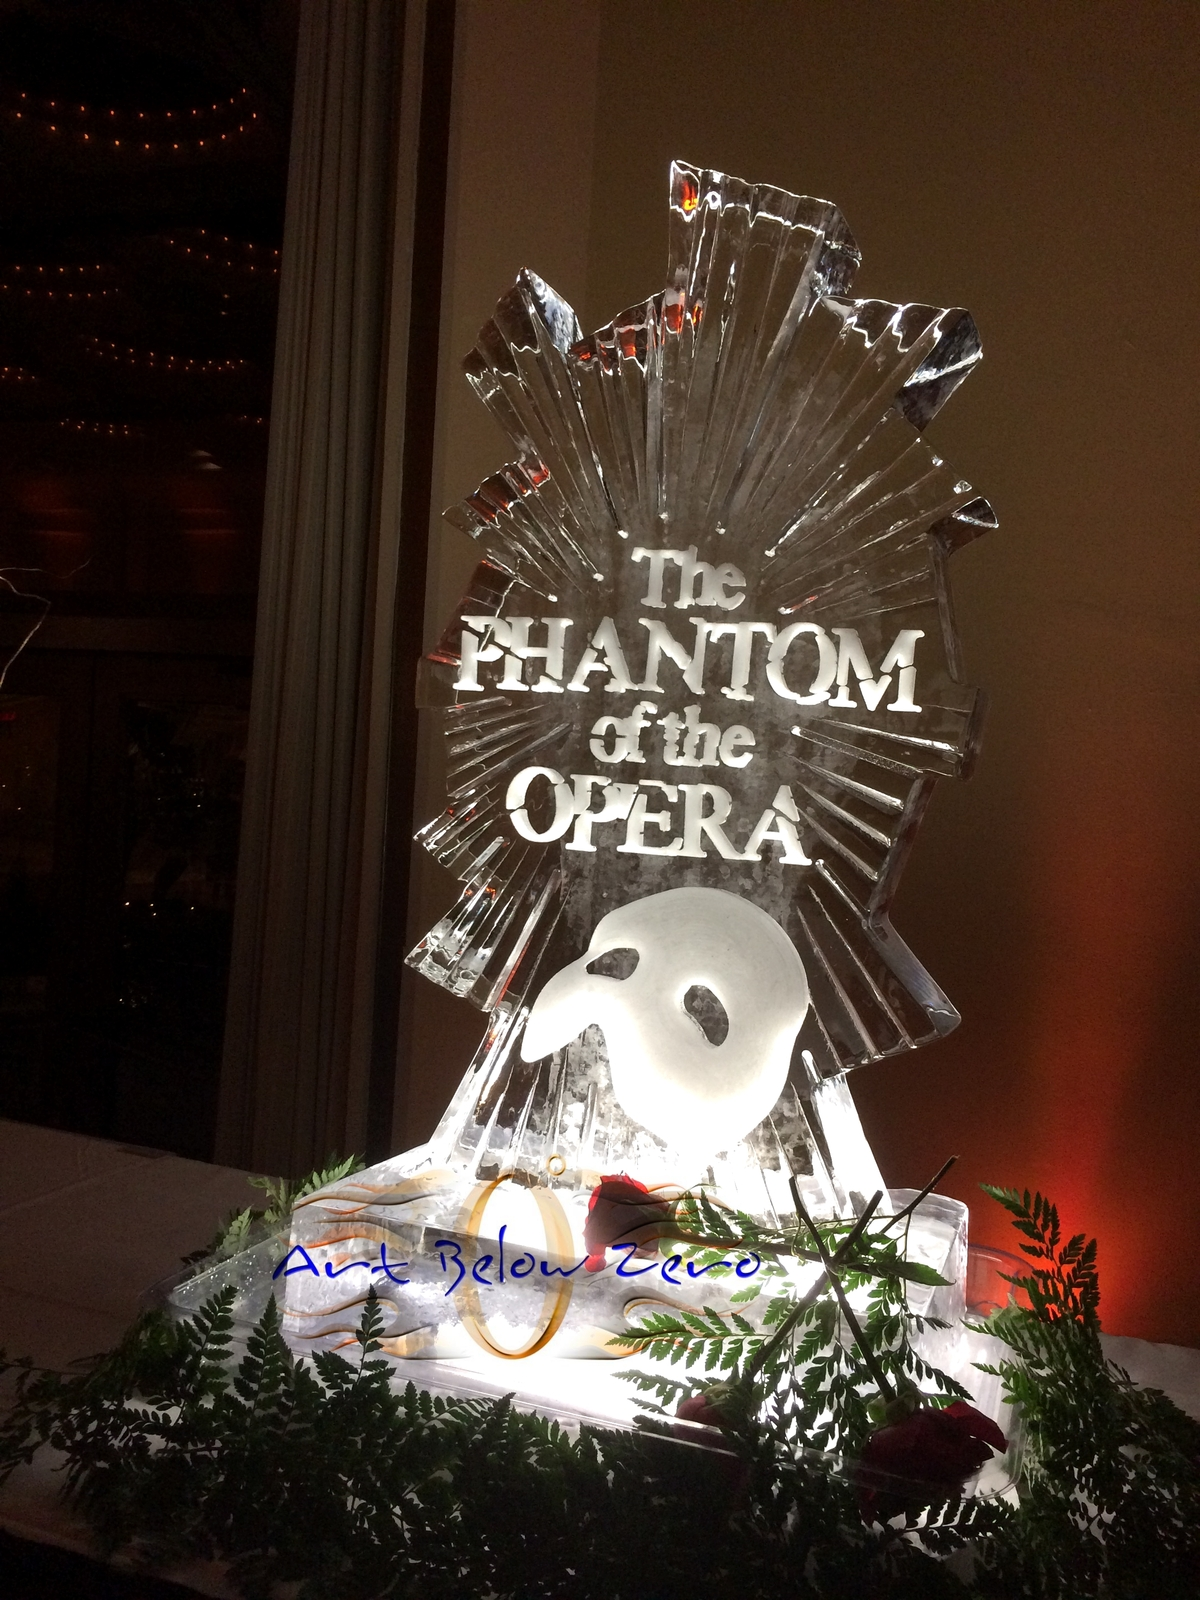 The_phantom_of_the_opera_ice_sculpture_at_the_marcus_center_for_the_arts